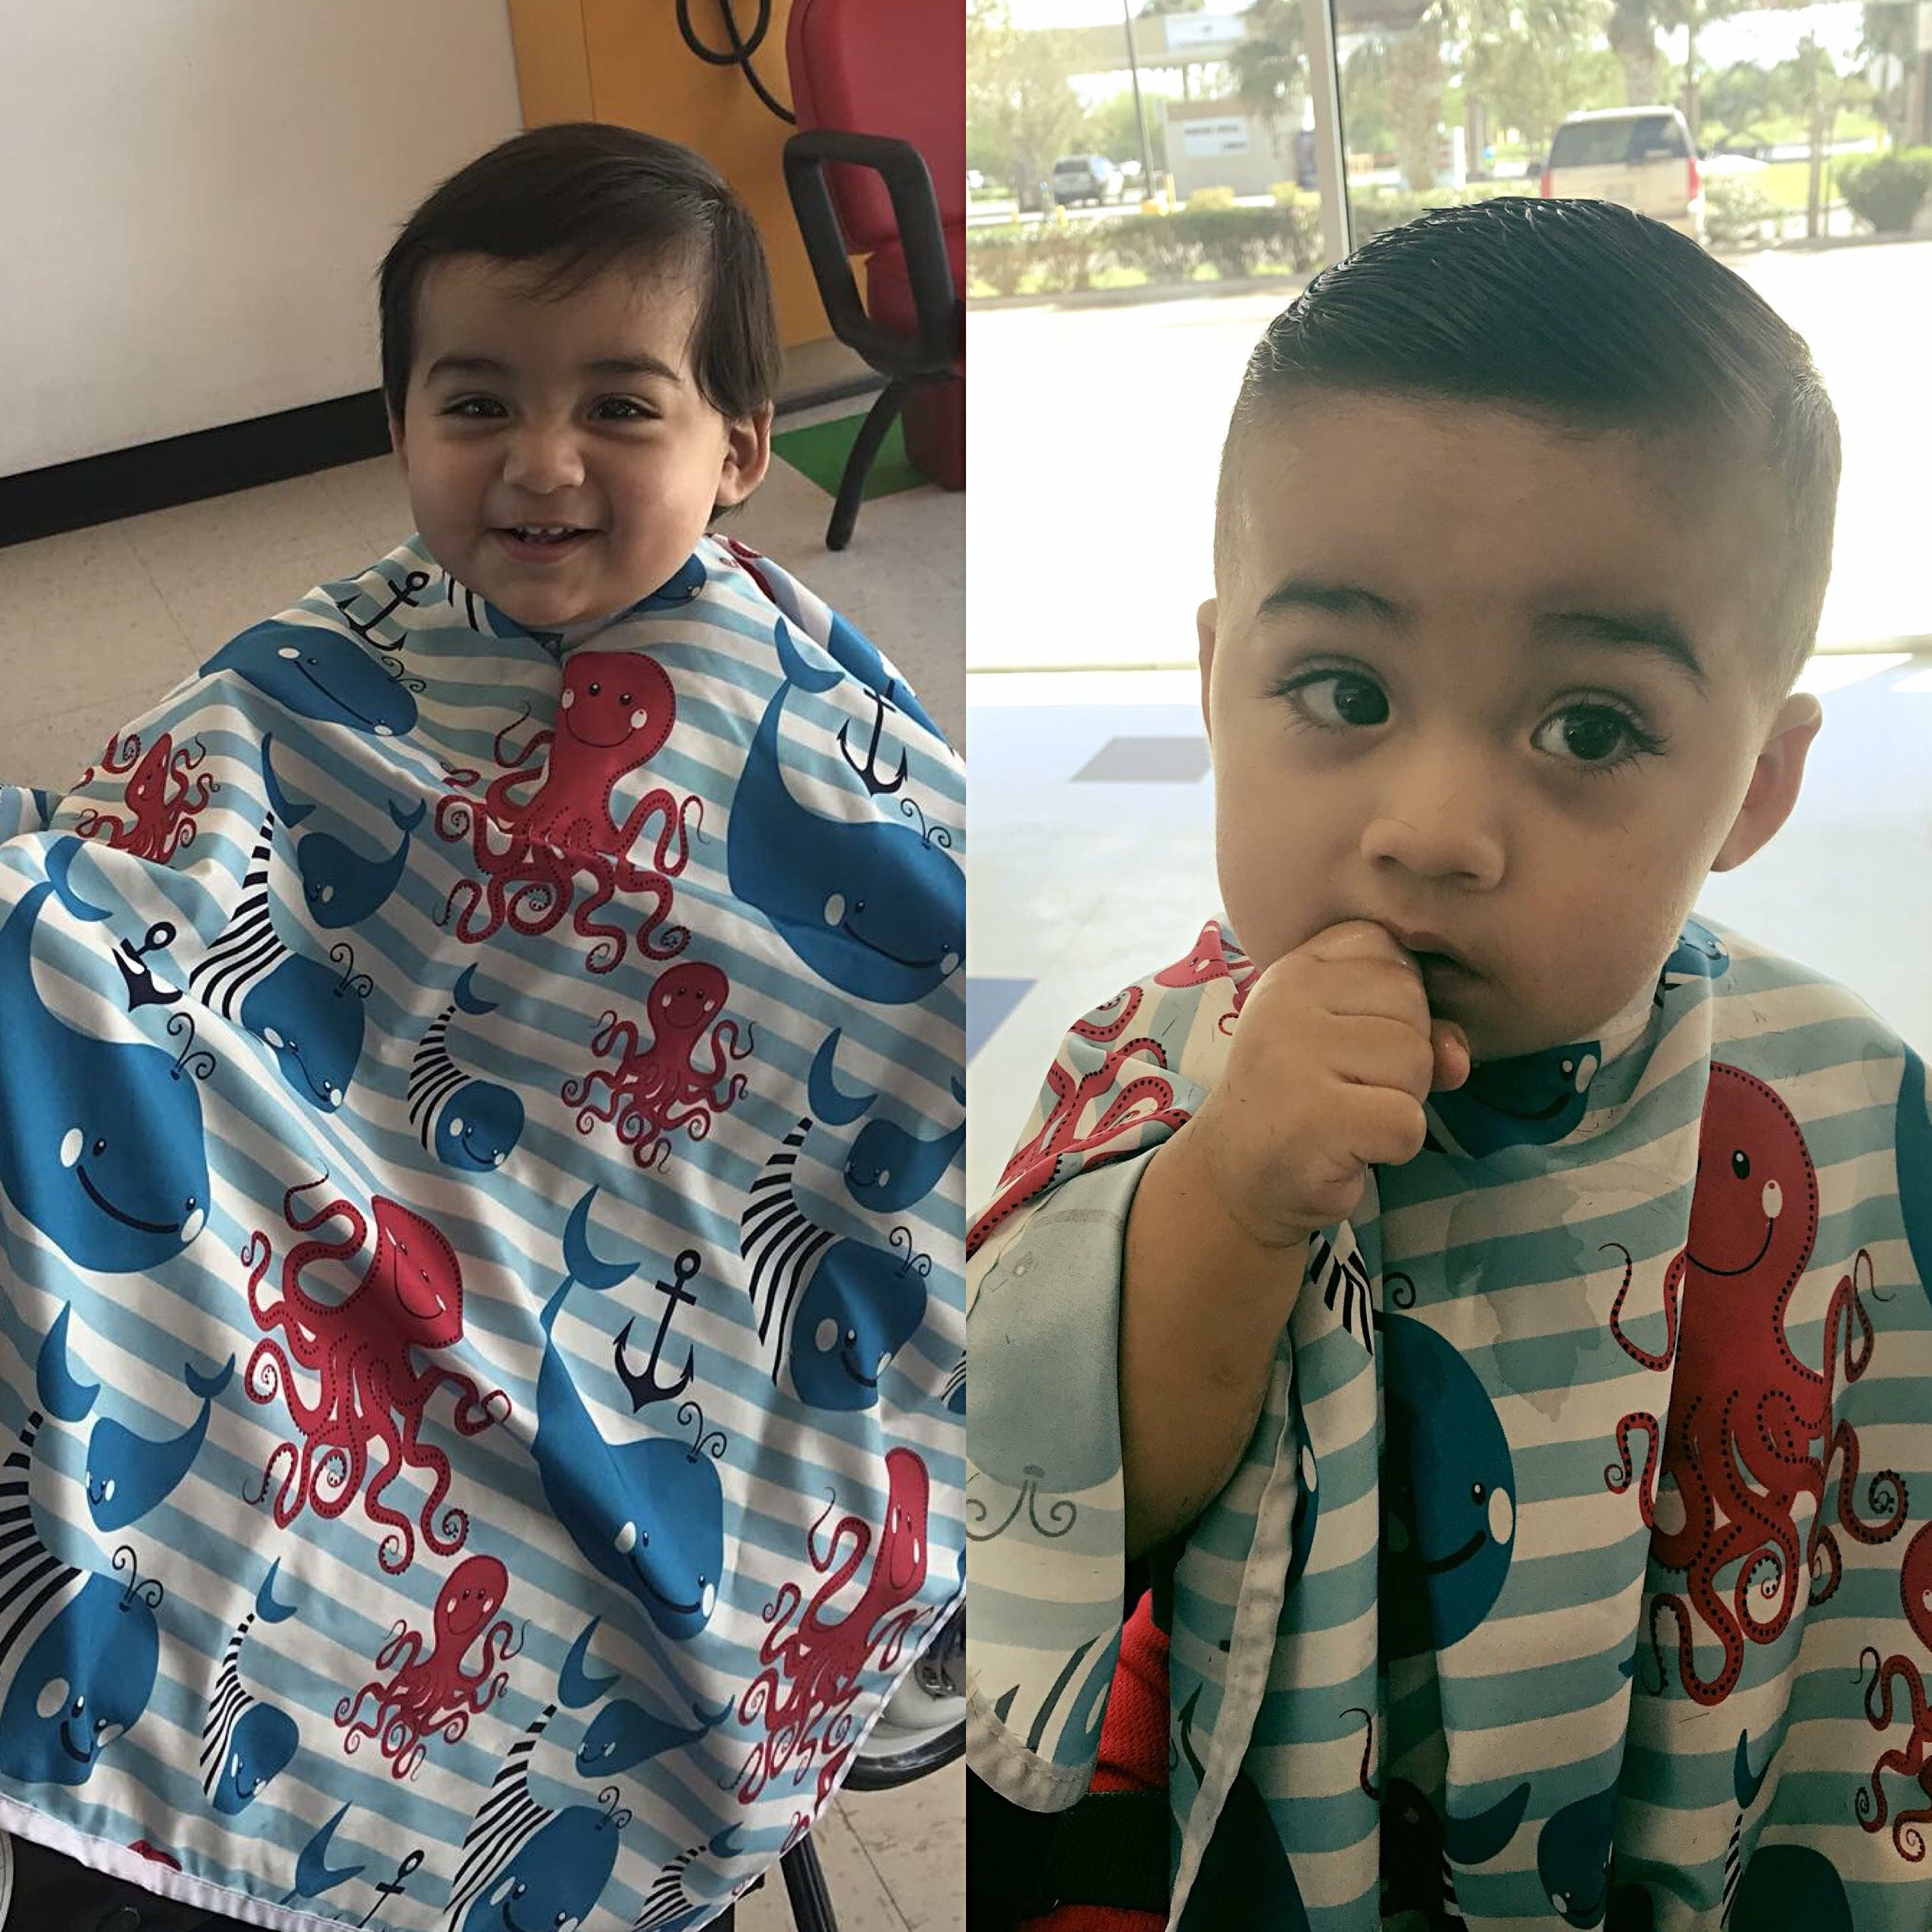 Pin On Hair Cuts Styles For Little Boys